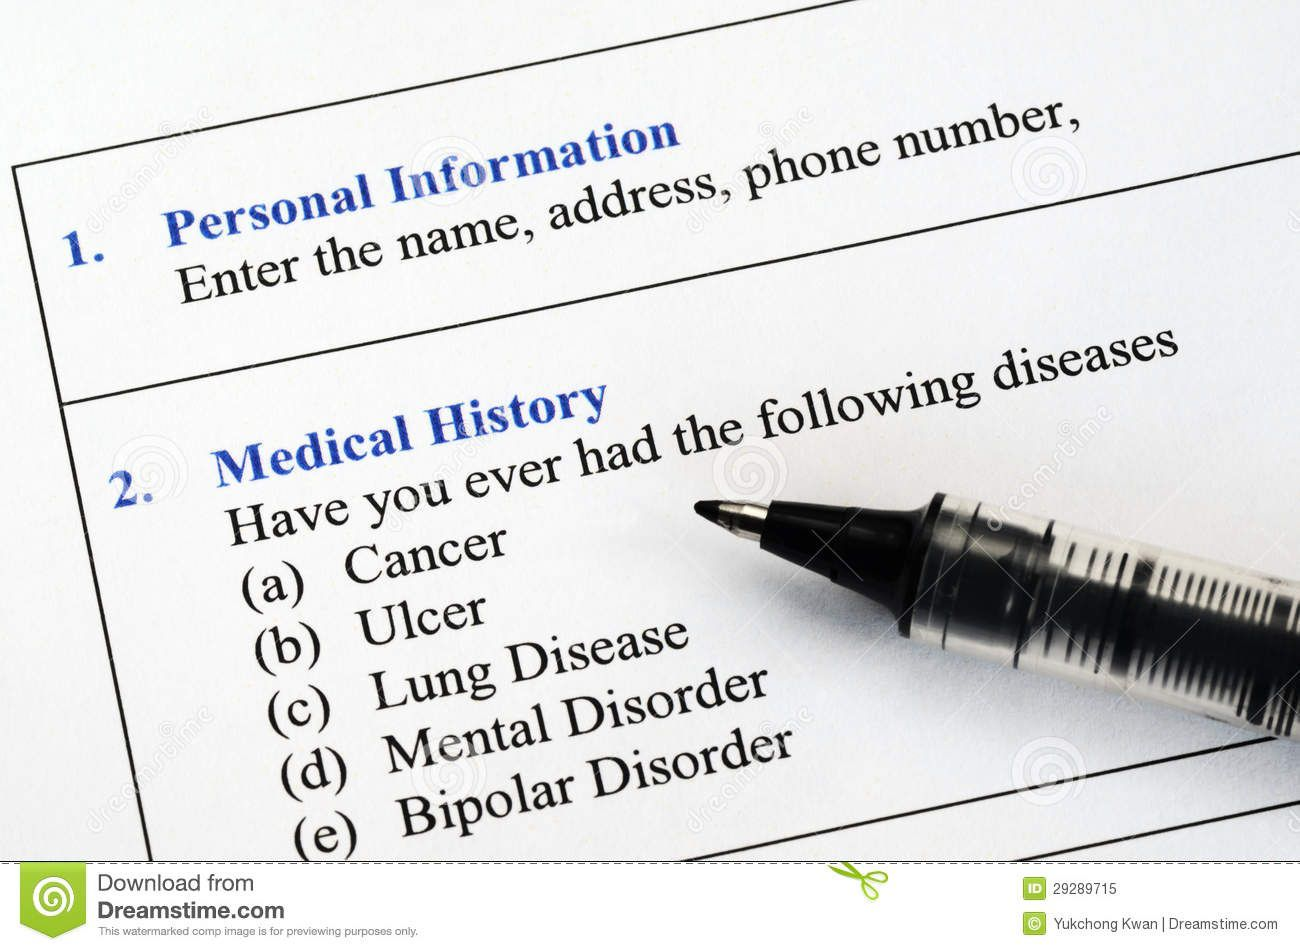 005 Wondrou Free Personal Medical History Template High Definition  Printable FormFull